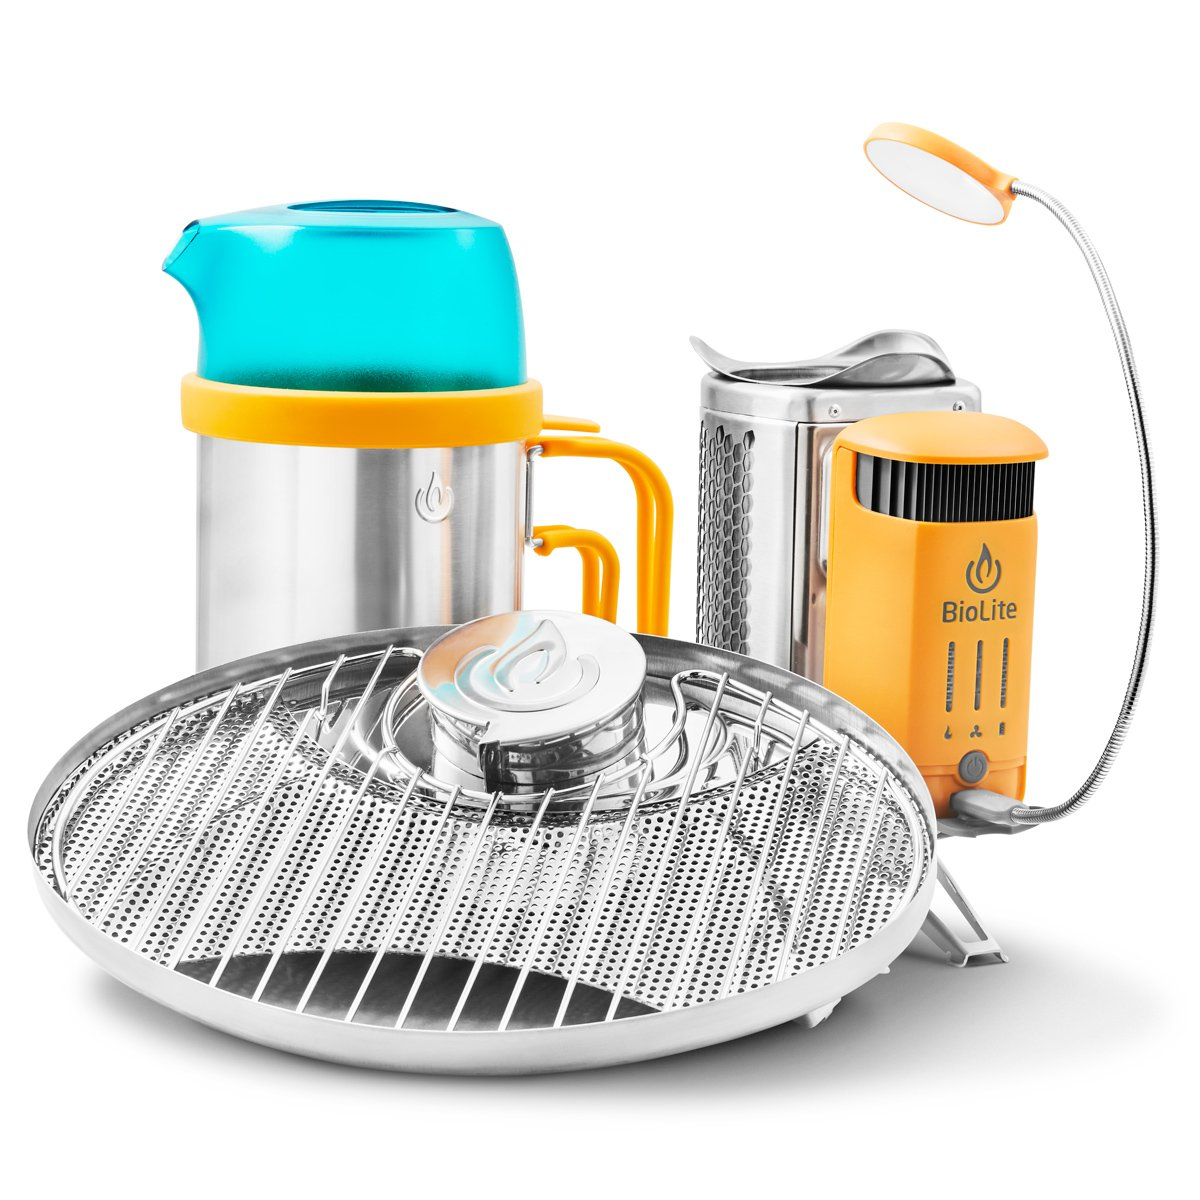 BioLite CampStove 2 Bundle- Includes Wood-Burning Small Lightweight CampStove 2, USB FlexLight, 2600 mAh Powerbank, Portable Grill and KettlePot Attachments , Silver/Yellow/Aqua (CSX2001) by BioLite (Image #1)